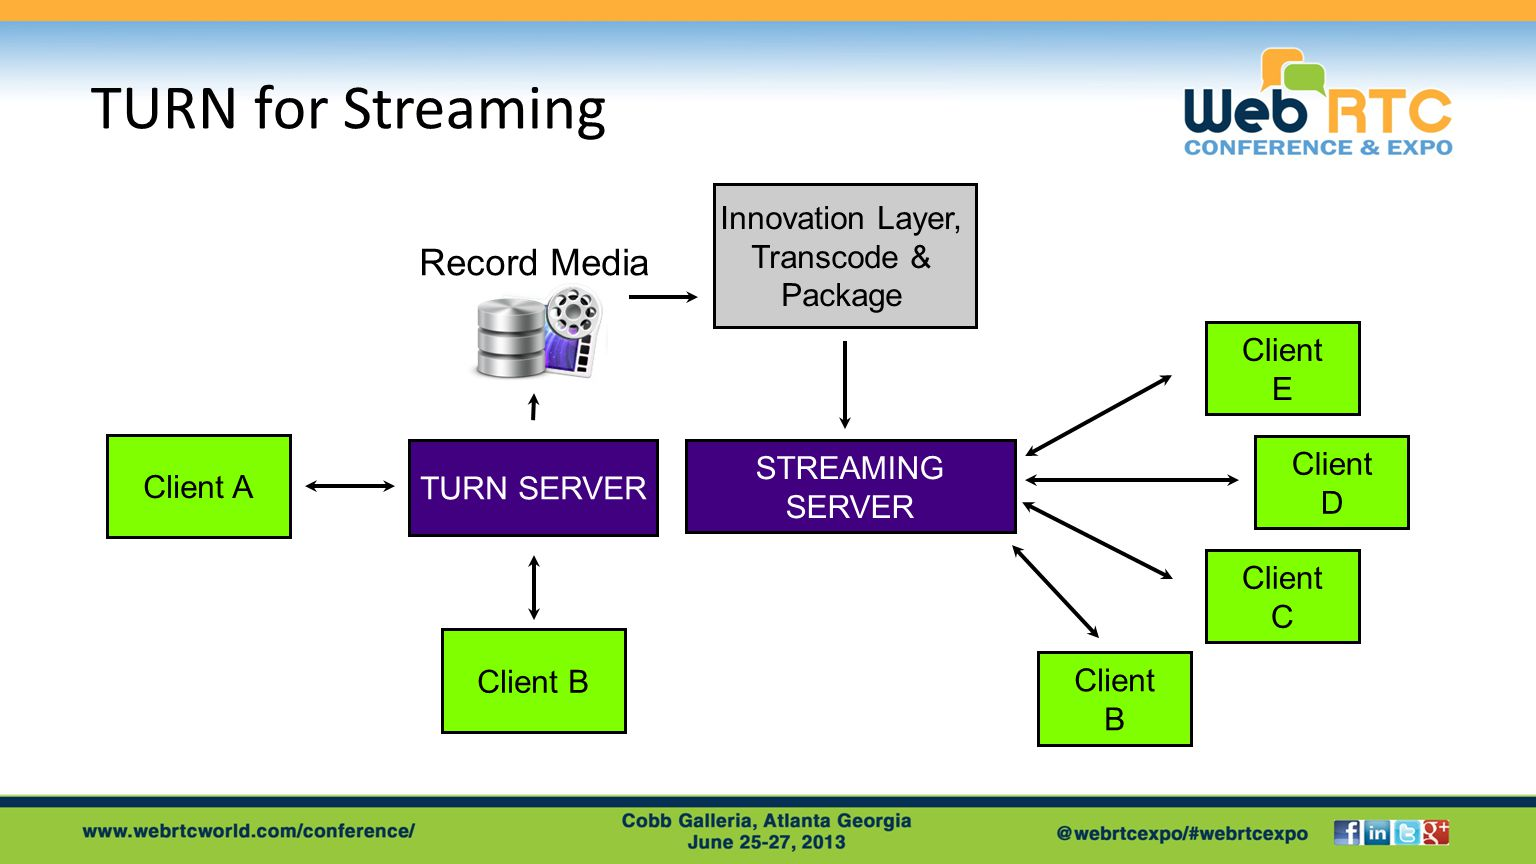 TURN for Streaming Client A TURN SERVER Client B Record Media STREAMING SERVER Client B Client C Client D Client E Innovation Layer, Transcode & Package